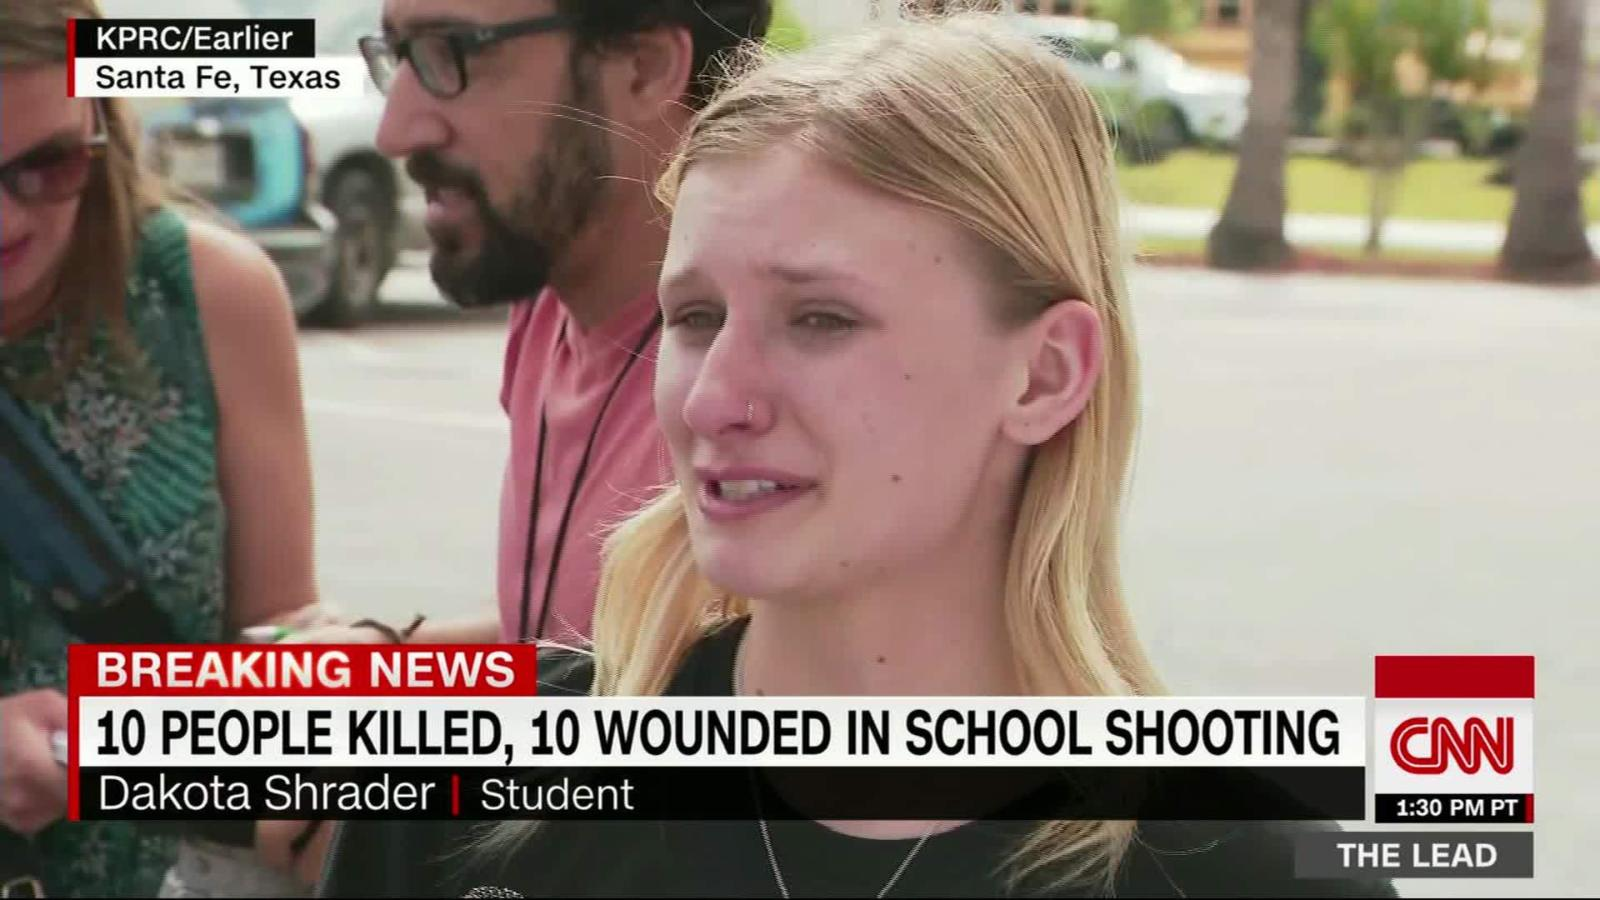 Santa Fe News >> Something Important Was Different About This Shooting Opinion Cnn